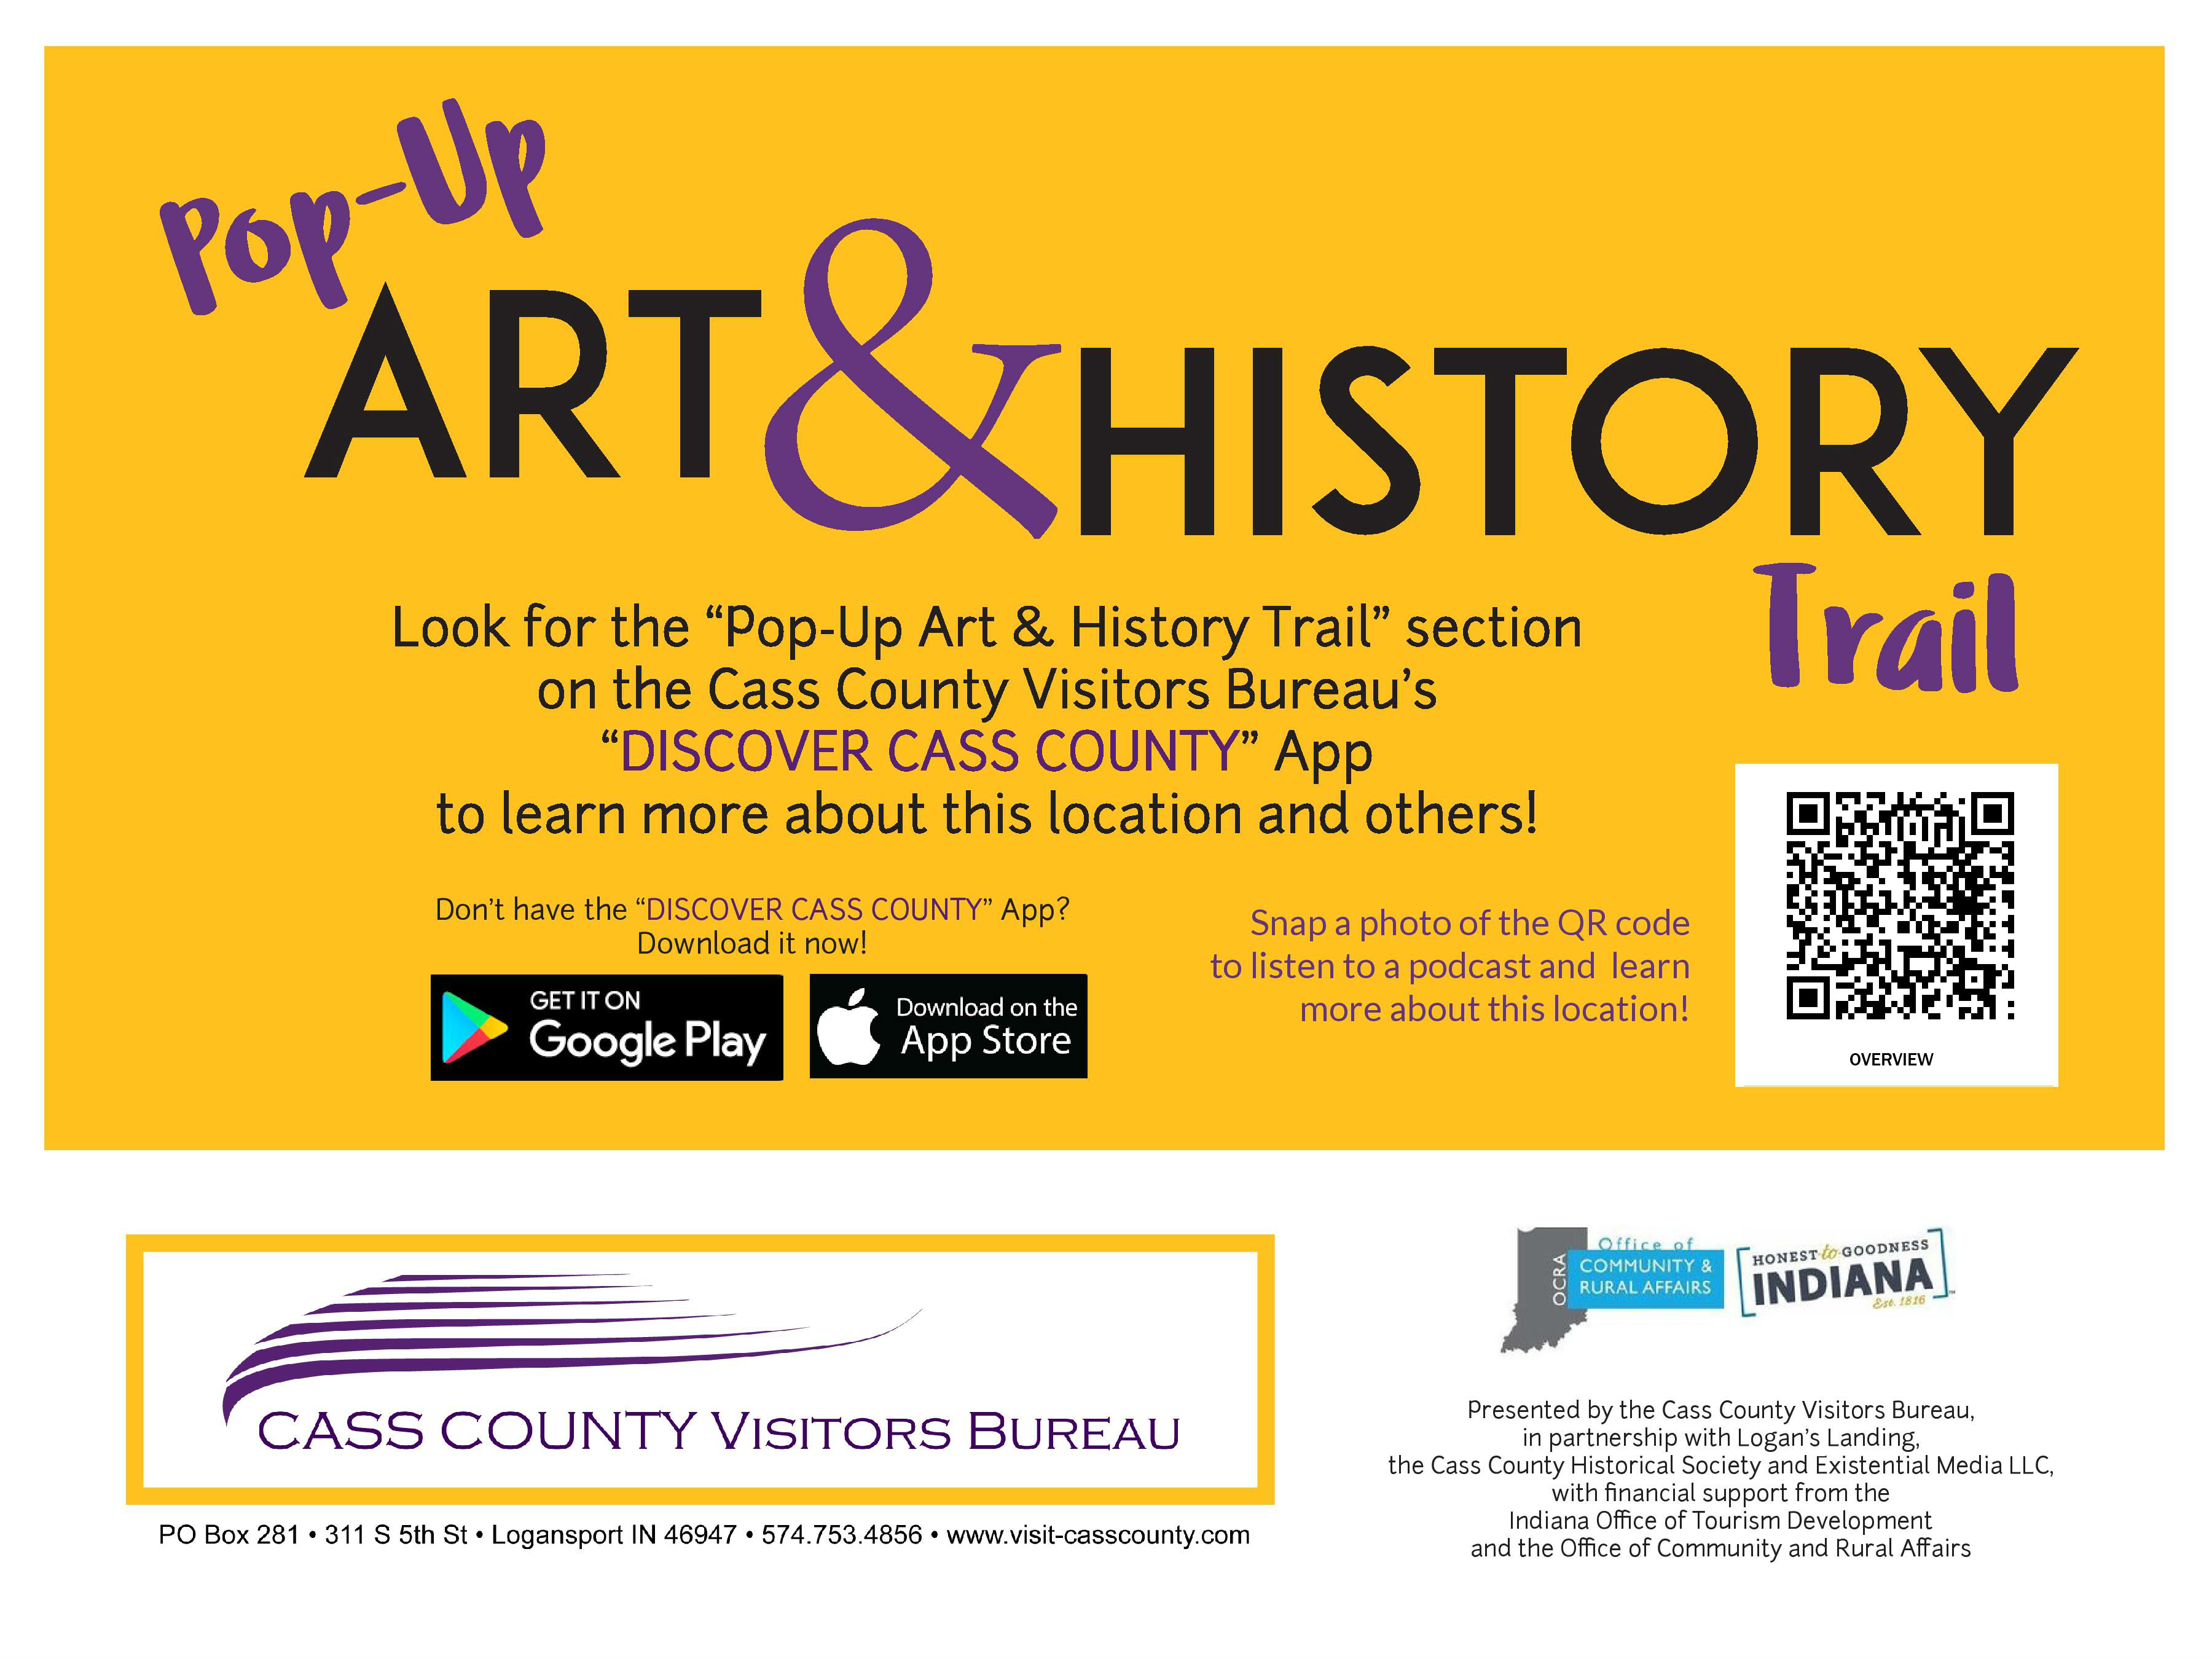 Pop Up Art & History Trail sign